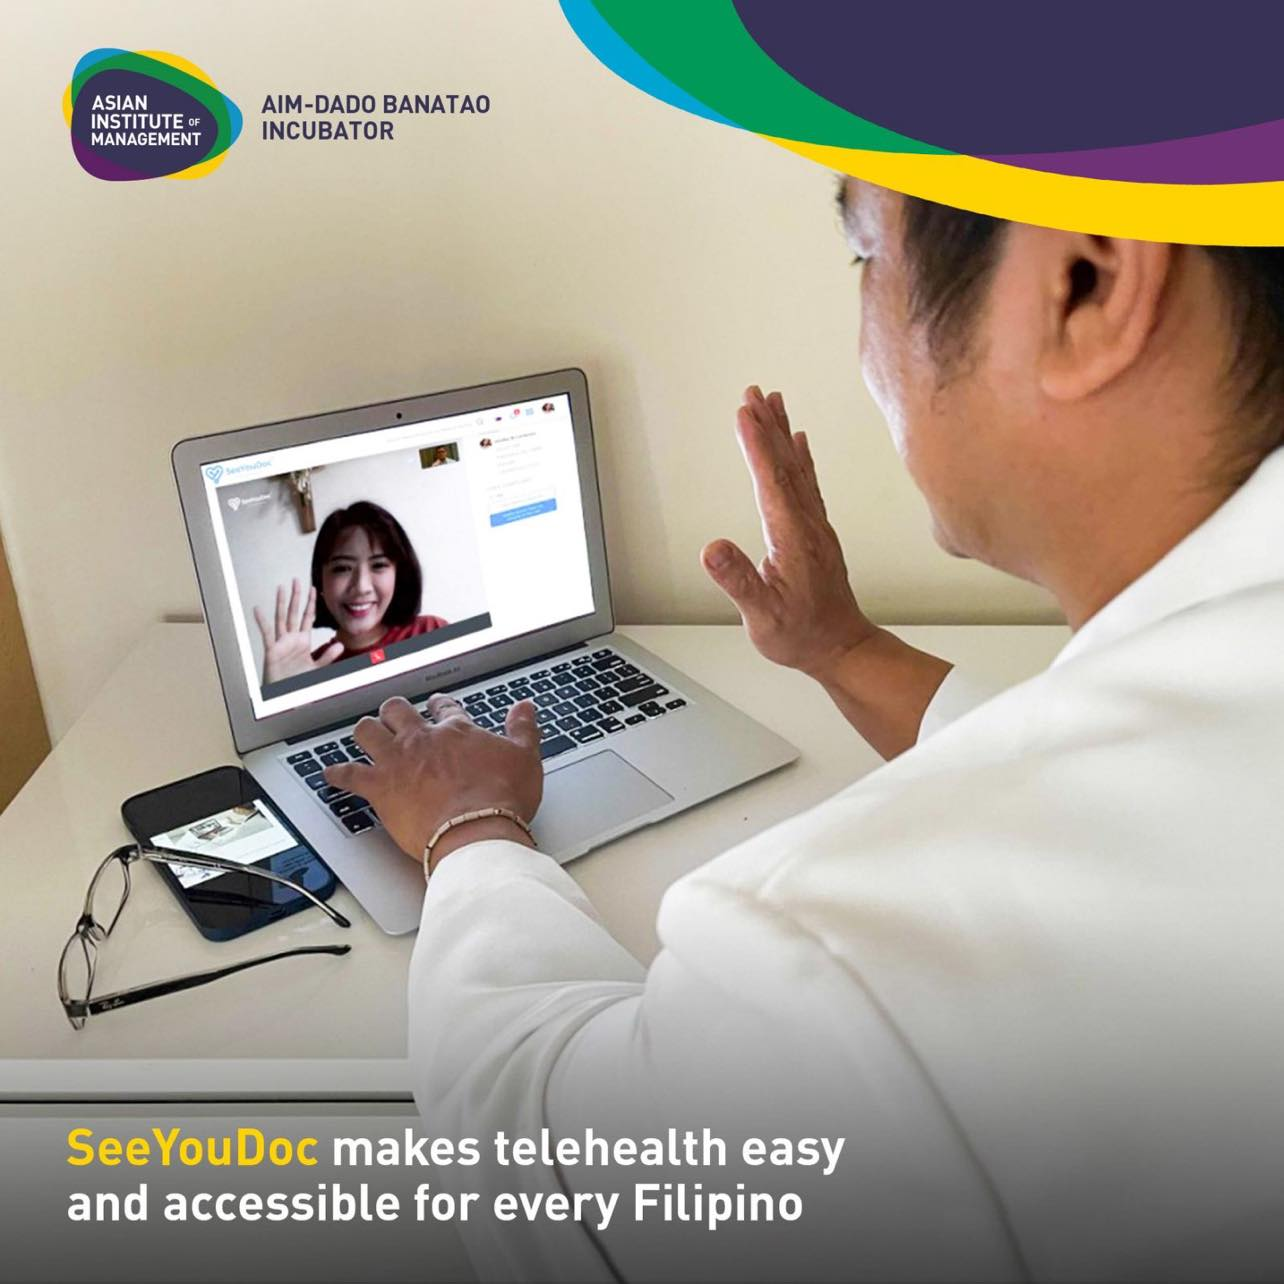 eHealth and online consultation apps like SeeYouDoc help the advancement of public health informatics in the Philippines.